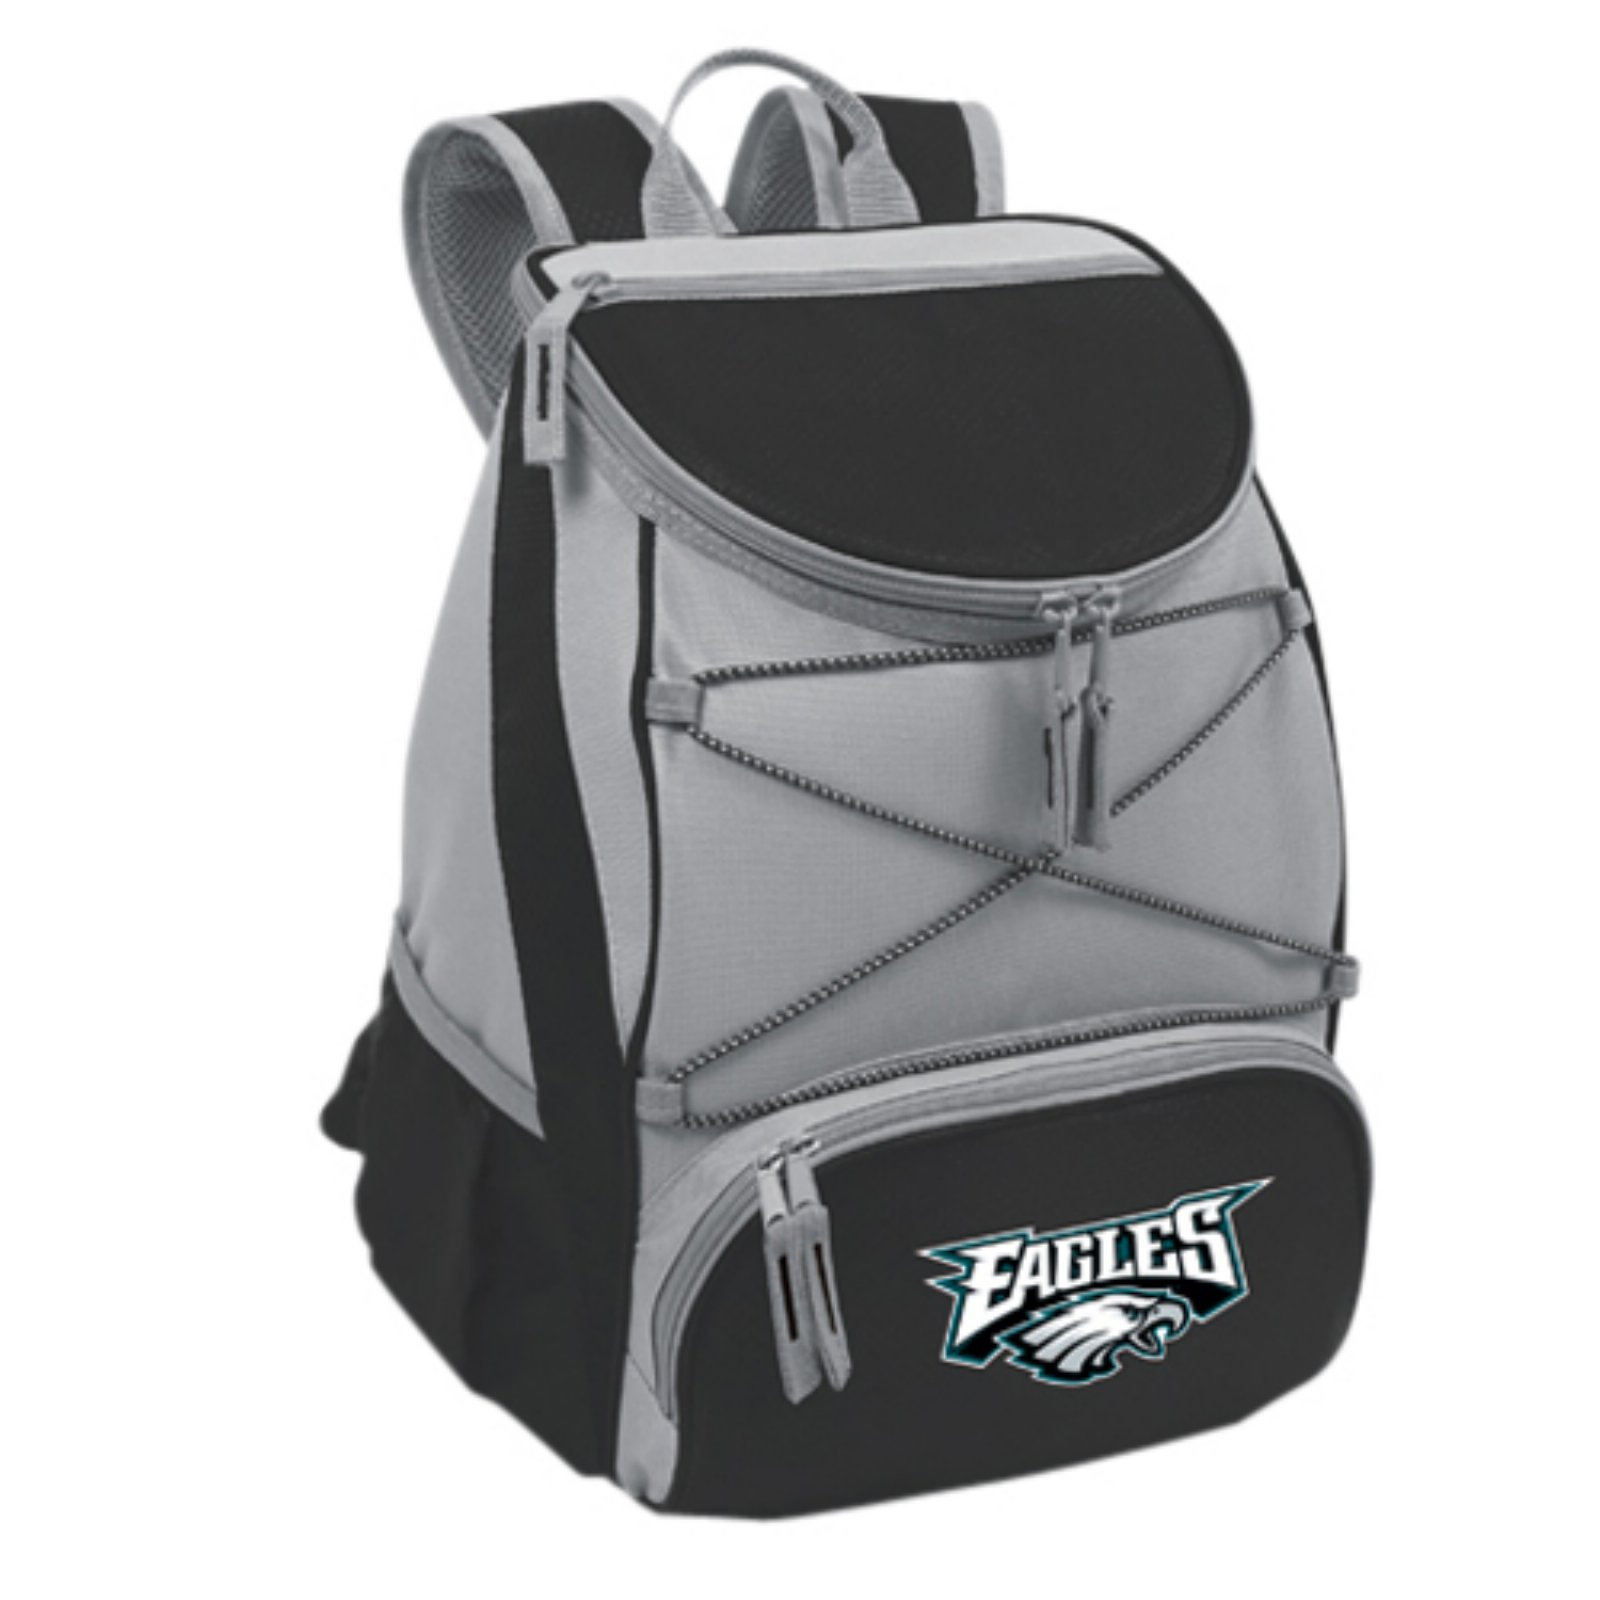 Picnic Time PTX Cooler, Black Philadelphia Eagles Digital Print